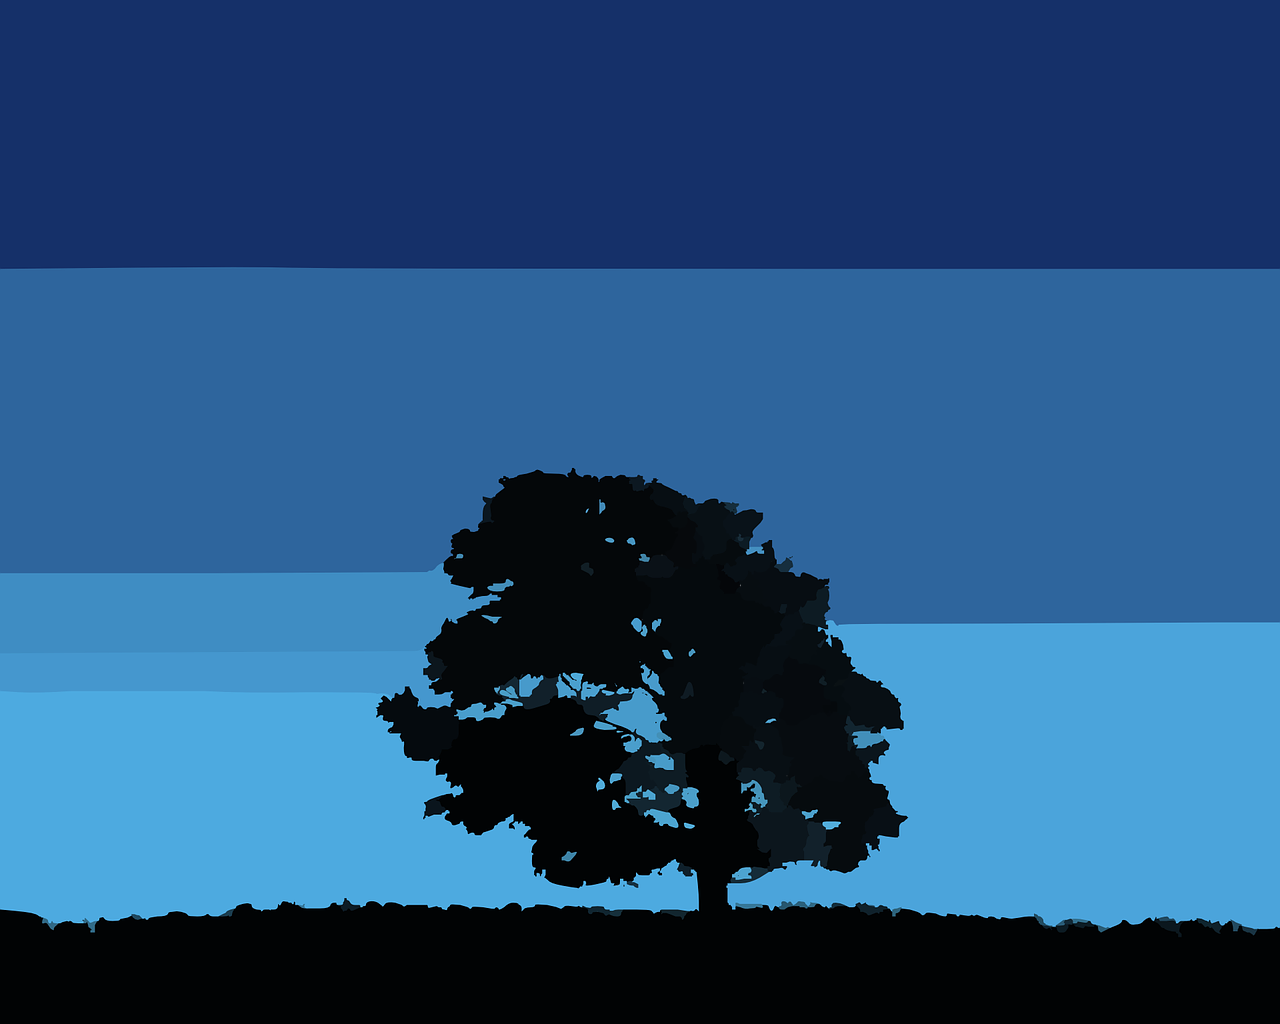 How to draw night, night landscape 1